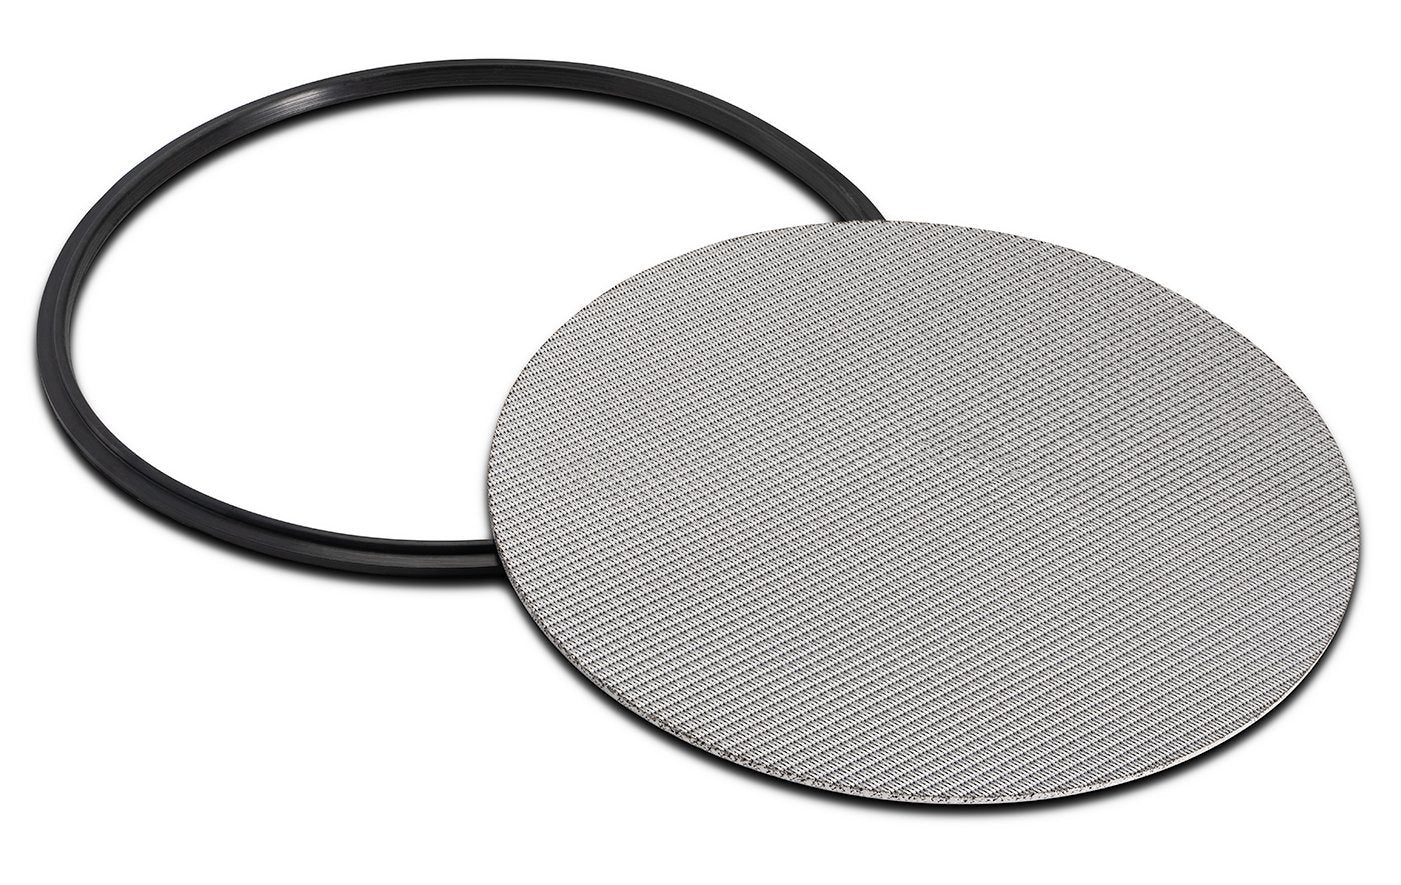 "316L Stainless Dutch Weave Sintered Filter Disk 1 micron and up Shop All Categories BVV 6"" 1 Micron"